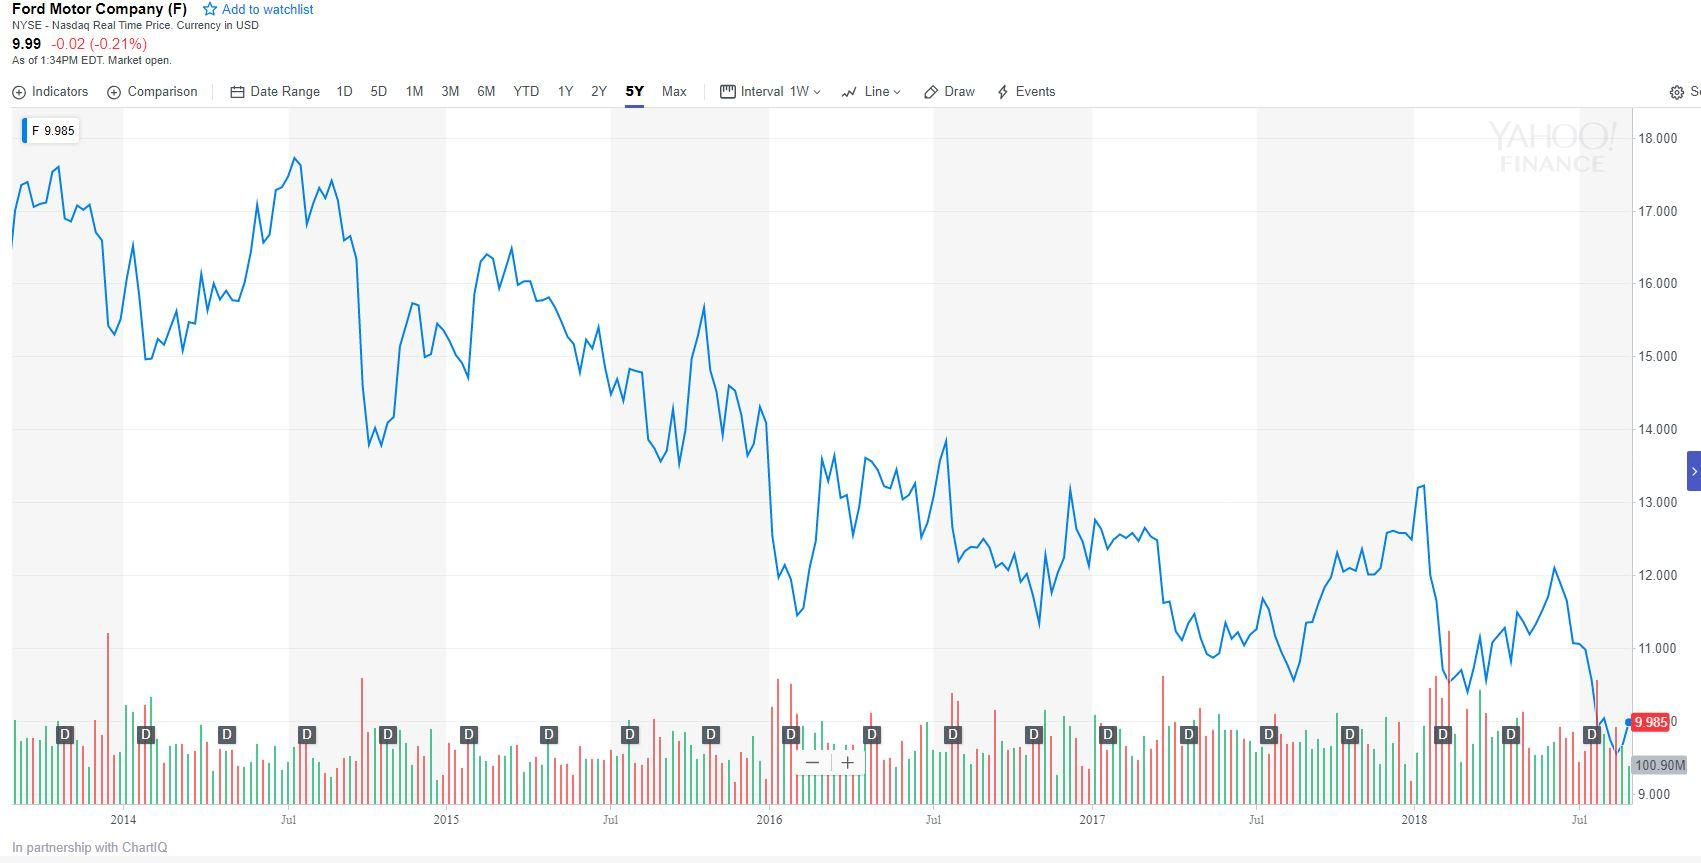 There is little doubt that ford motor company nysef has been under pressure for a while if we look at a stock chart over the last five years